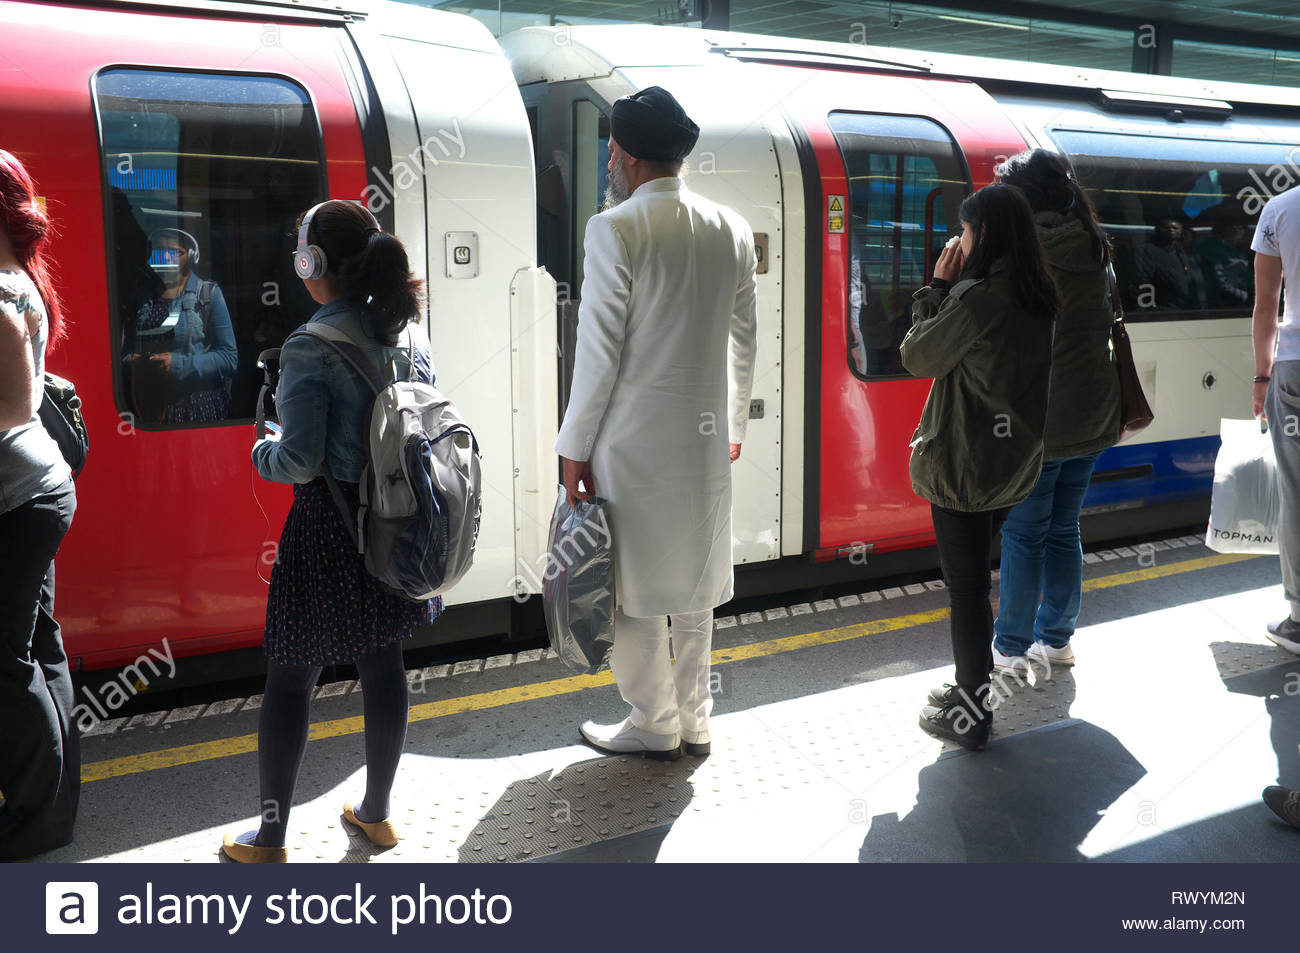 A smart dressed Indian man wearing a white suit and shoes awaits his train. London Underground, UK. Stock Photo